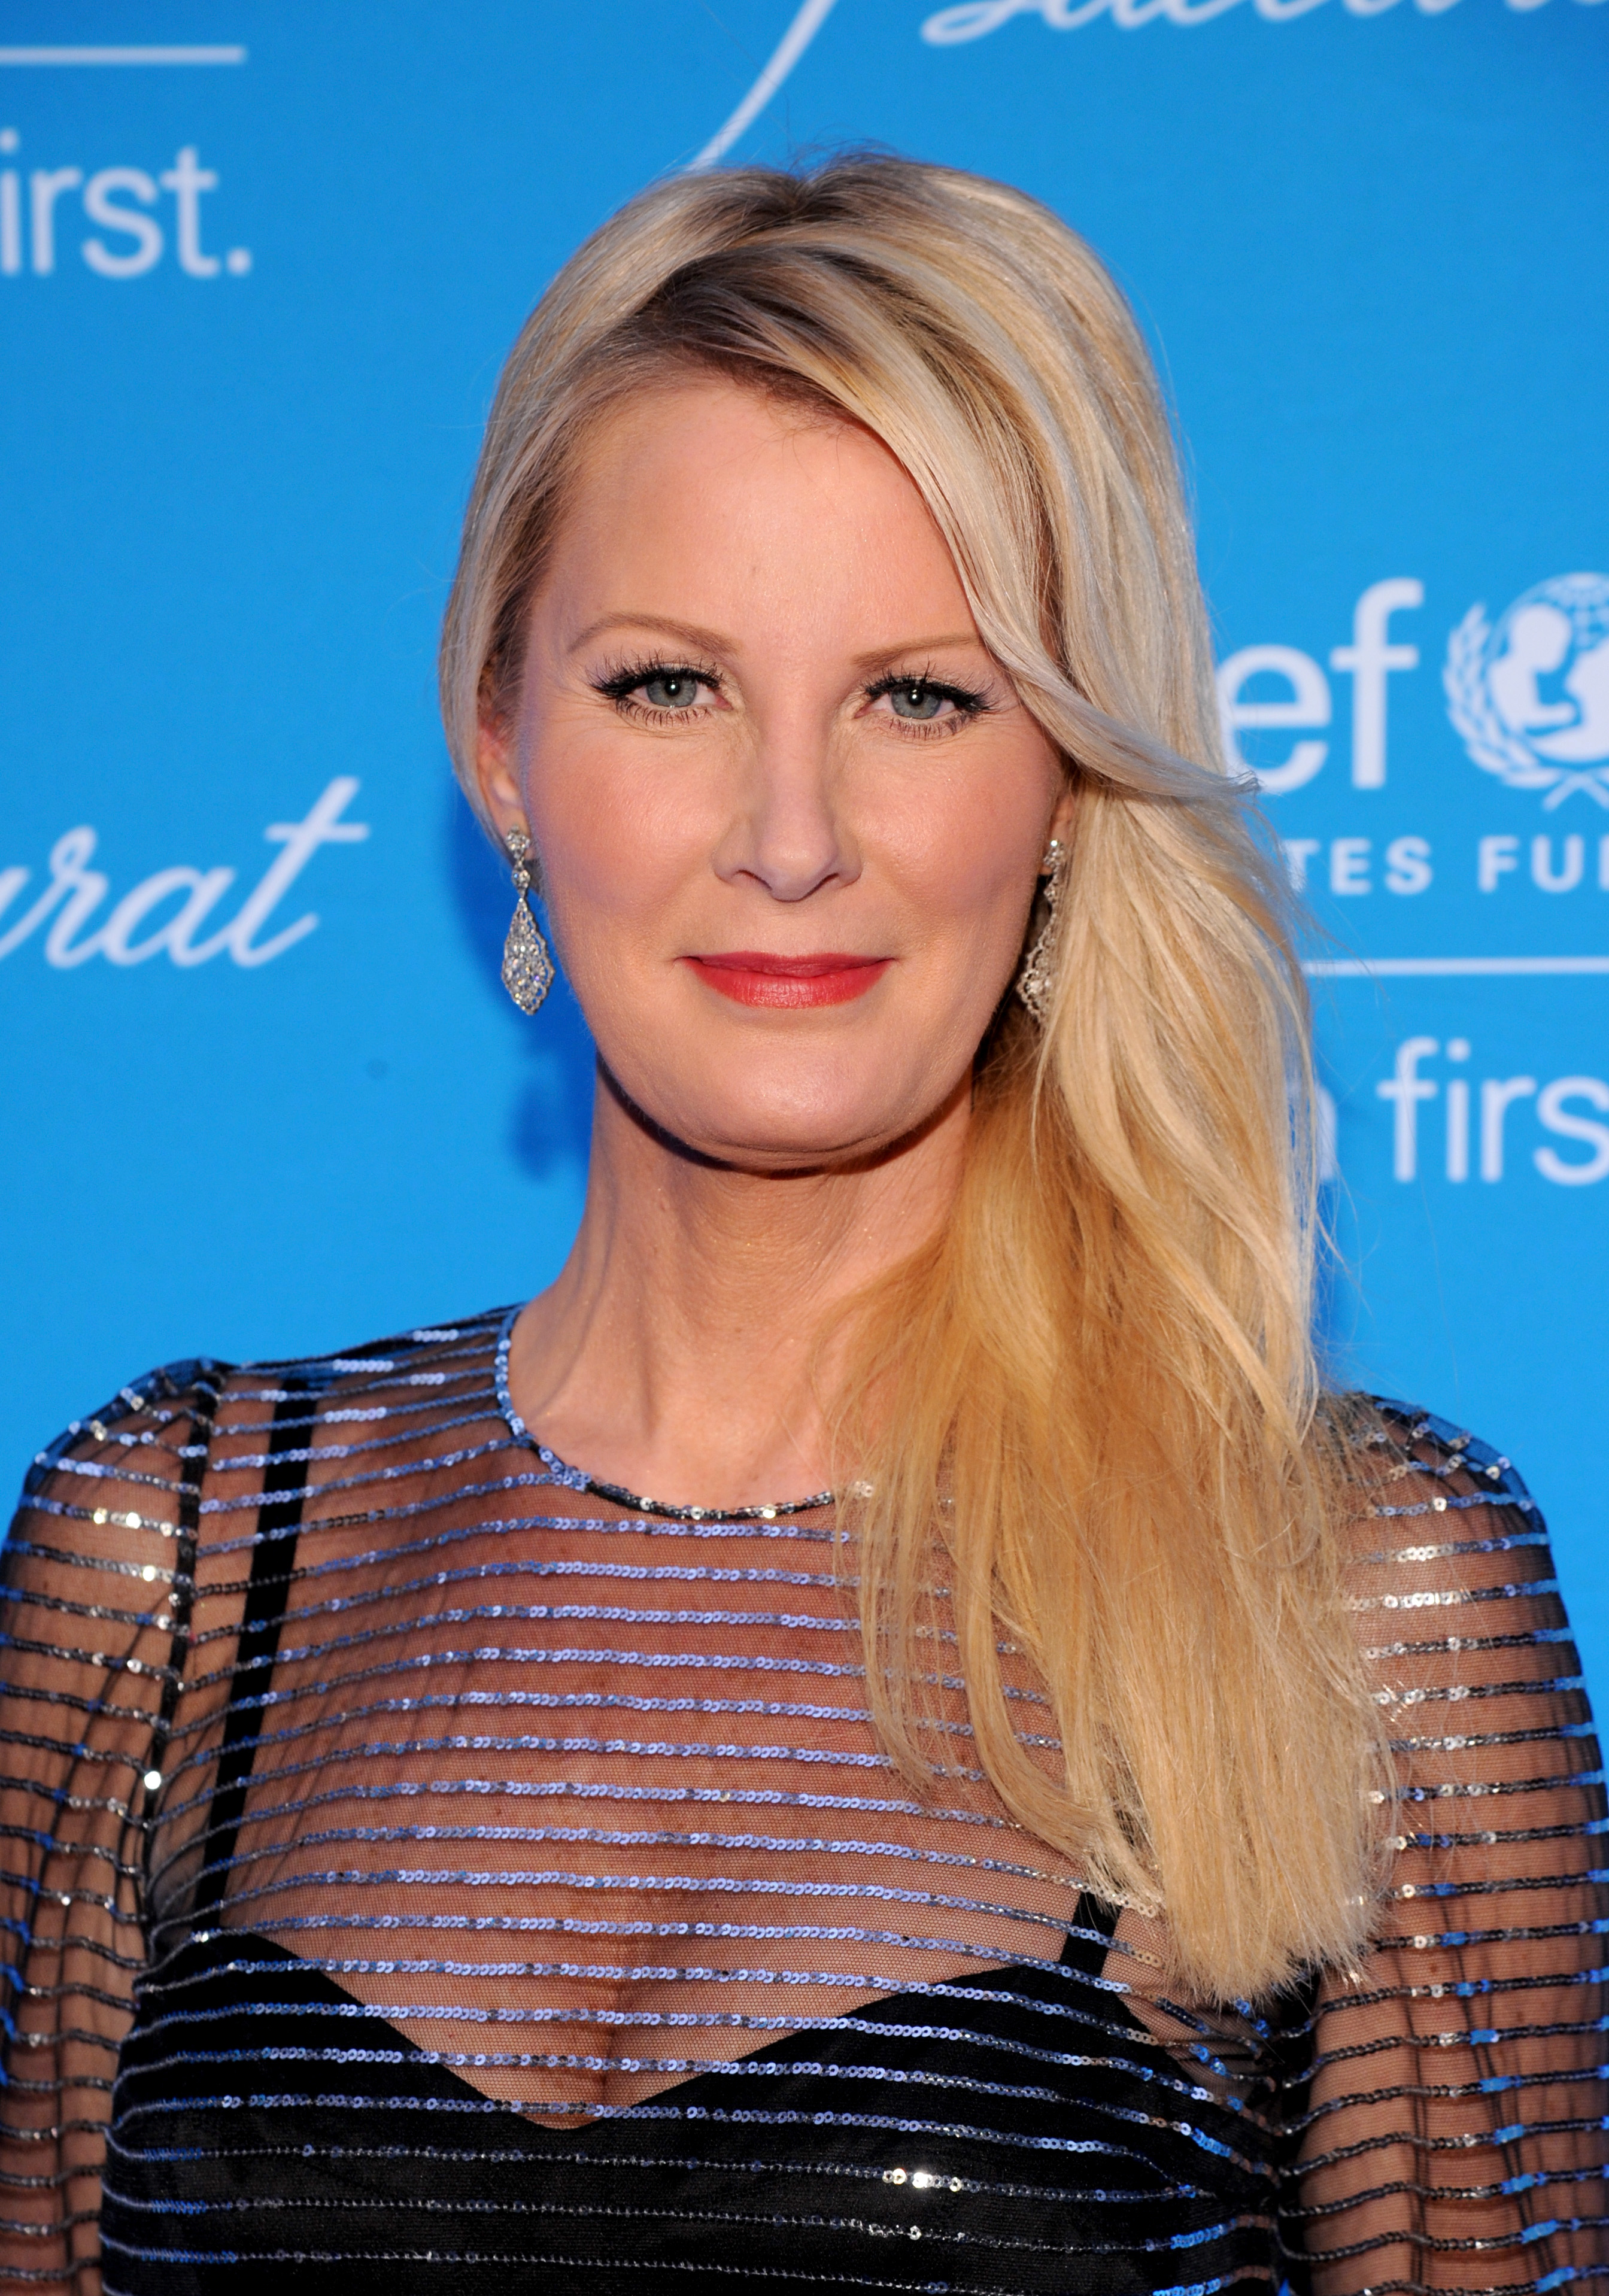 Chef Sandra Lee attends the 10th annual UNICEF Snowflake Ball at Cipriani Wall Street in New York City on Dec. 2, 2014